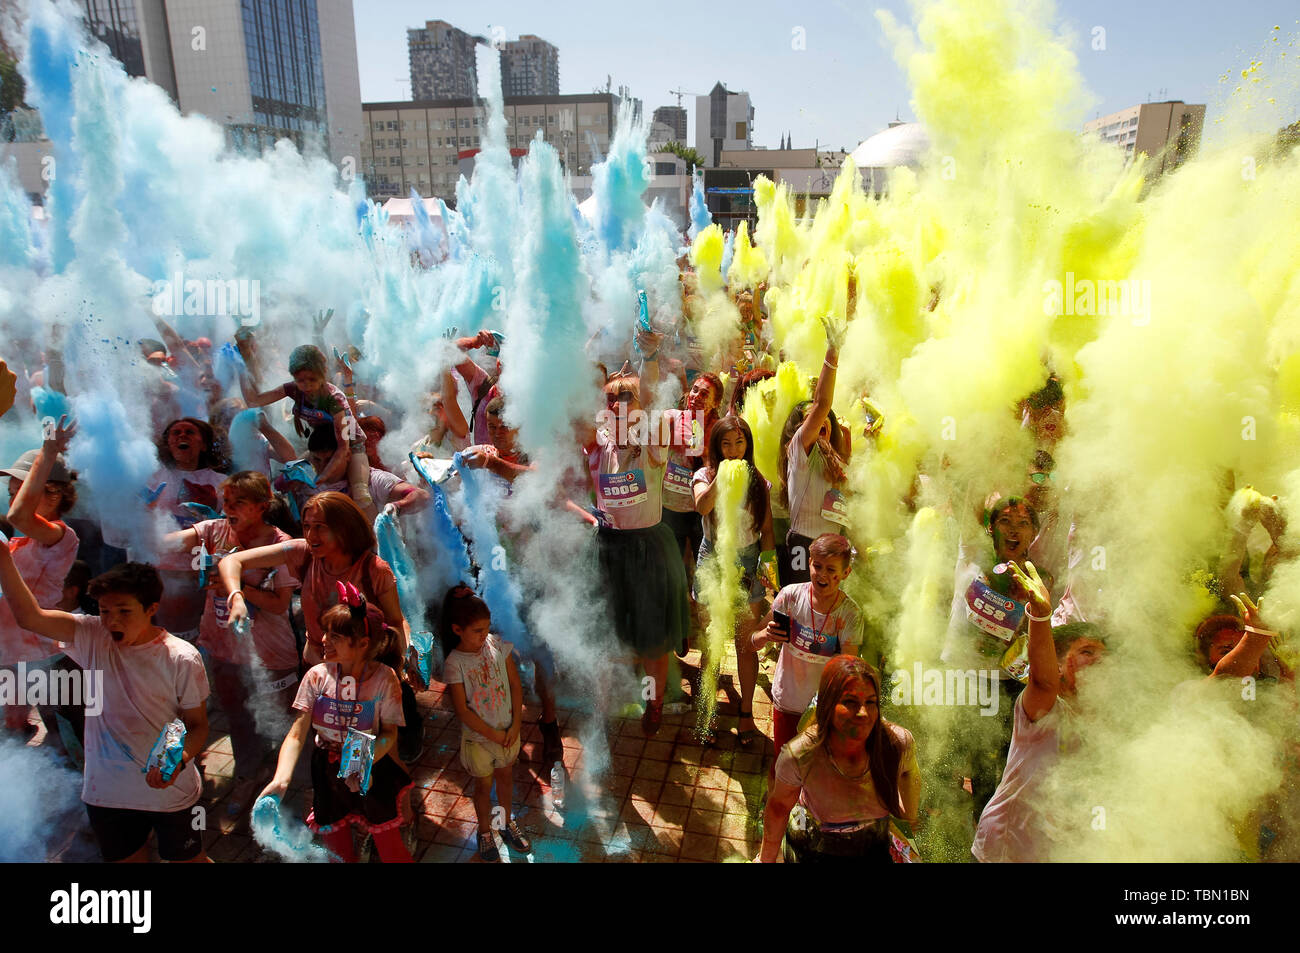 Colours being showered onto people during the event. The Color Run, also known as 'the happiest 5,000 meters on the planet', is an event series and paint race, its first event was in the United States in January 2012 since then the run has spread across the globe leaving a trail of color and happy runners across different continents and countries. The untimed event has no winners or prizes, but runners are showered with colored powder, made of food-grade corn starch, at stations along the run. In Ukrainian capital the first time Kyiv Color Run started in 2014. - Stock Image